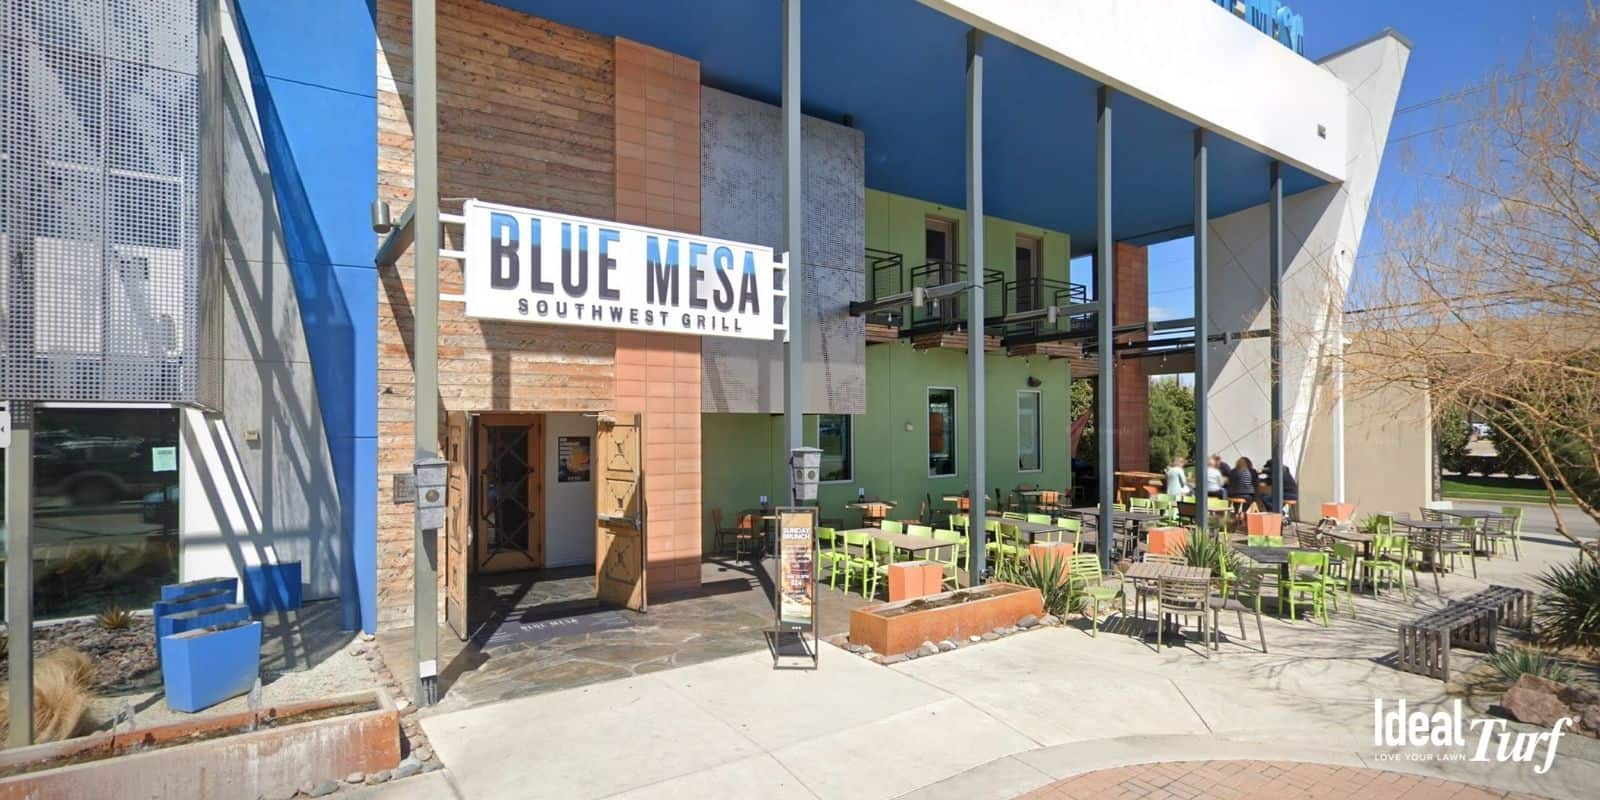 Front entrance and patio area of Blue Mesa Grill in Fort Worth